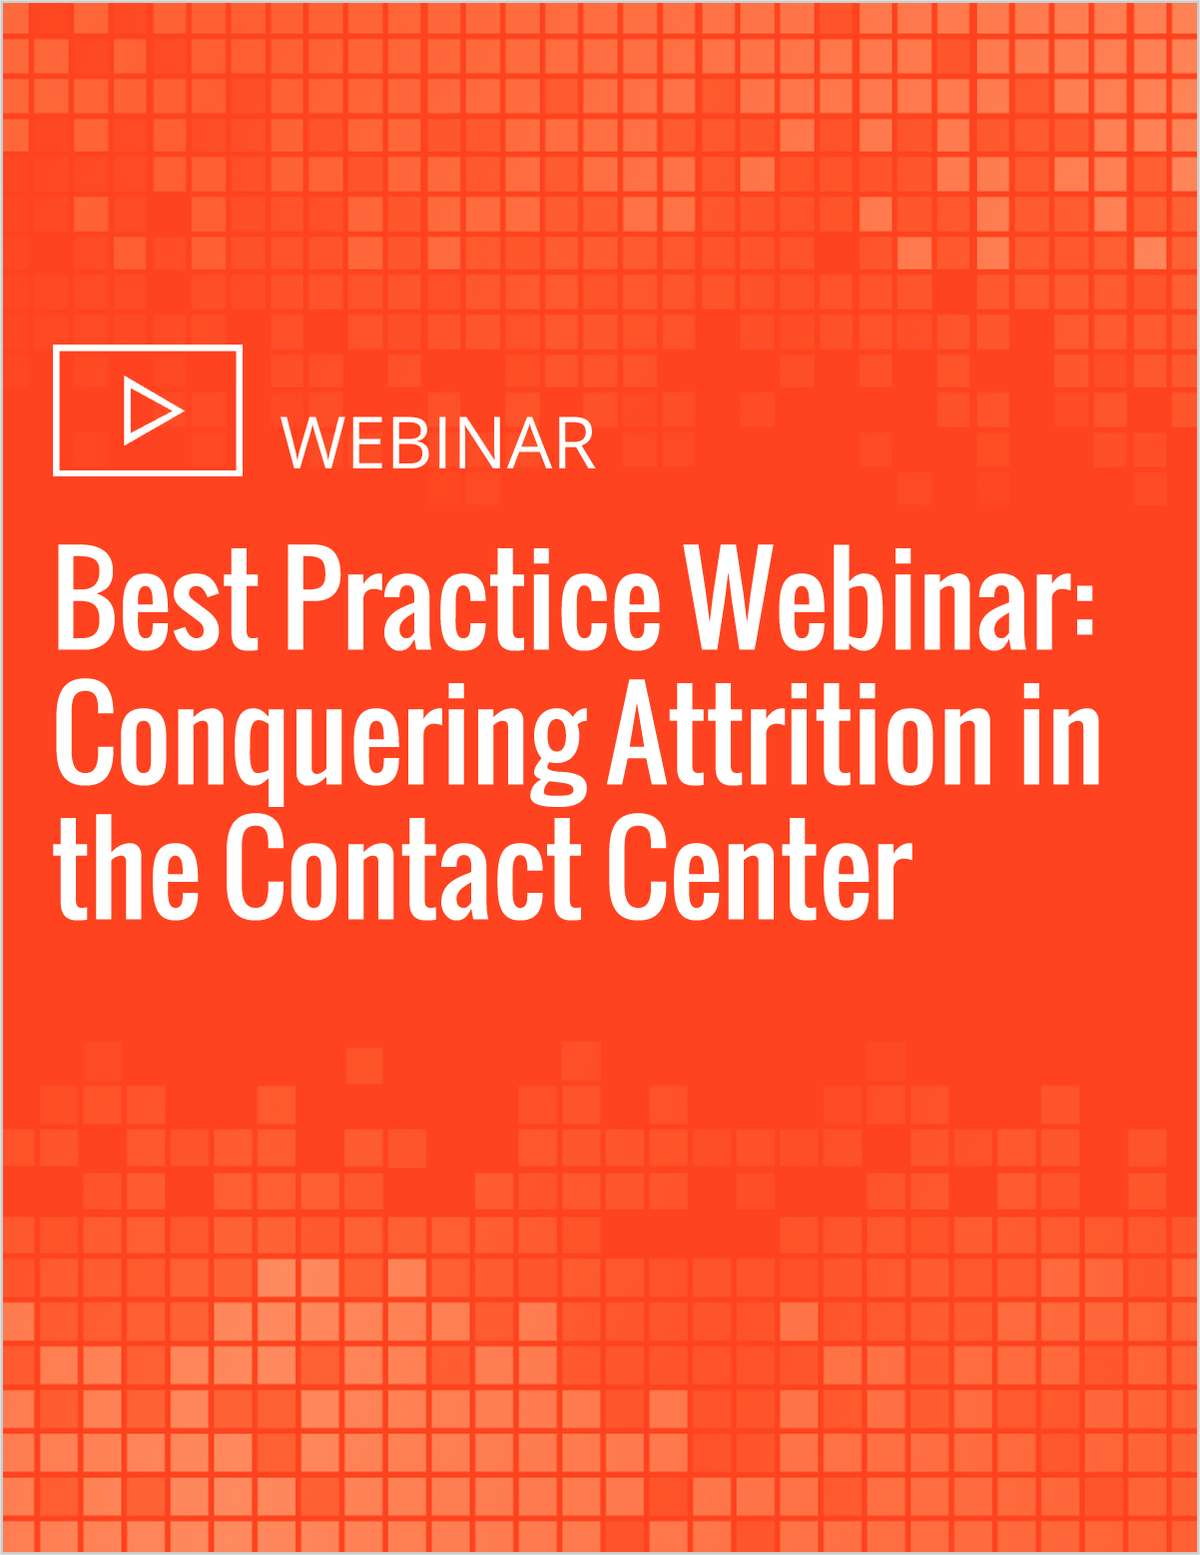 Best Practice Webinar: Conquering Attrition in the Contact Center